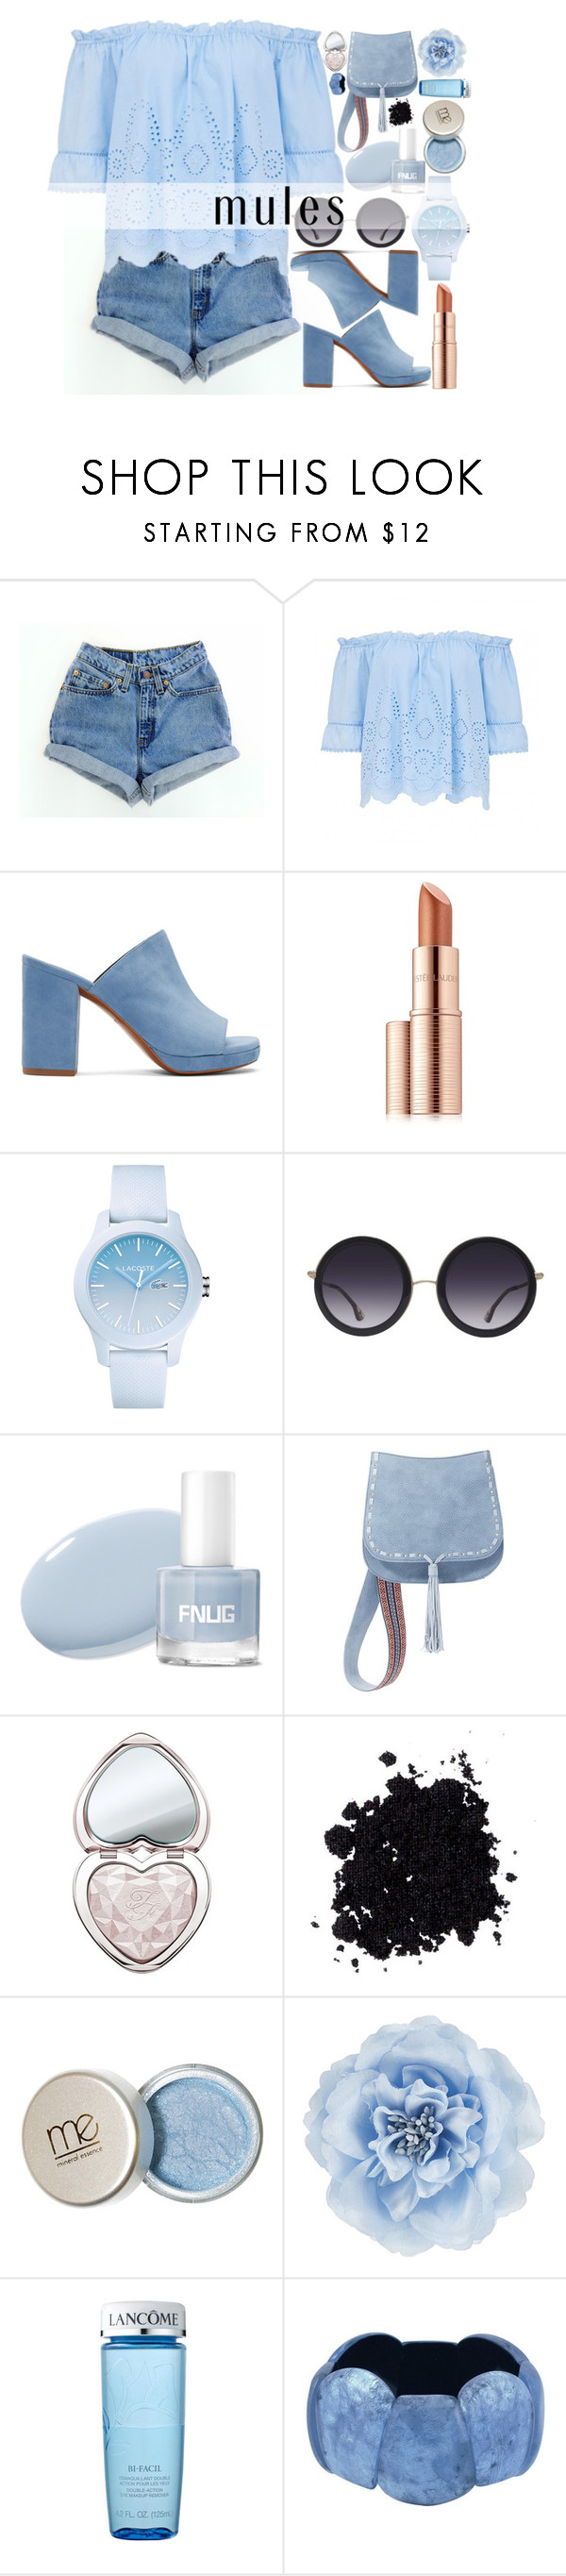 """""""Mules"""" by fangirl-preferences ❤ liked on Polyvore featuring Levi's, Robert Clergerie, Estée Lauder, Lacoste, Alice + Olivia, Steve Madden, Too Faced Cosmetics, Monsoon, Lancôme and shoes"""